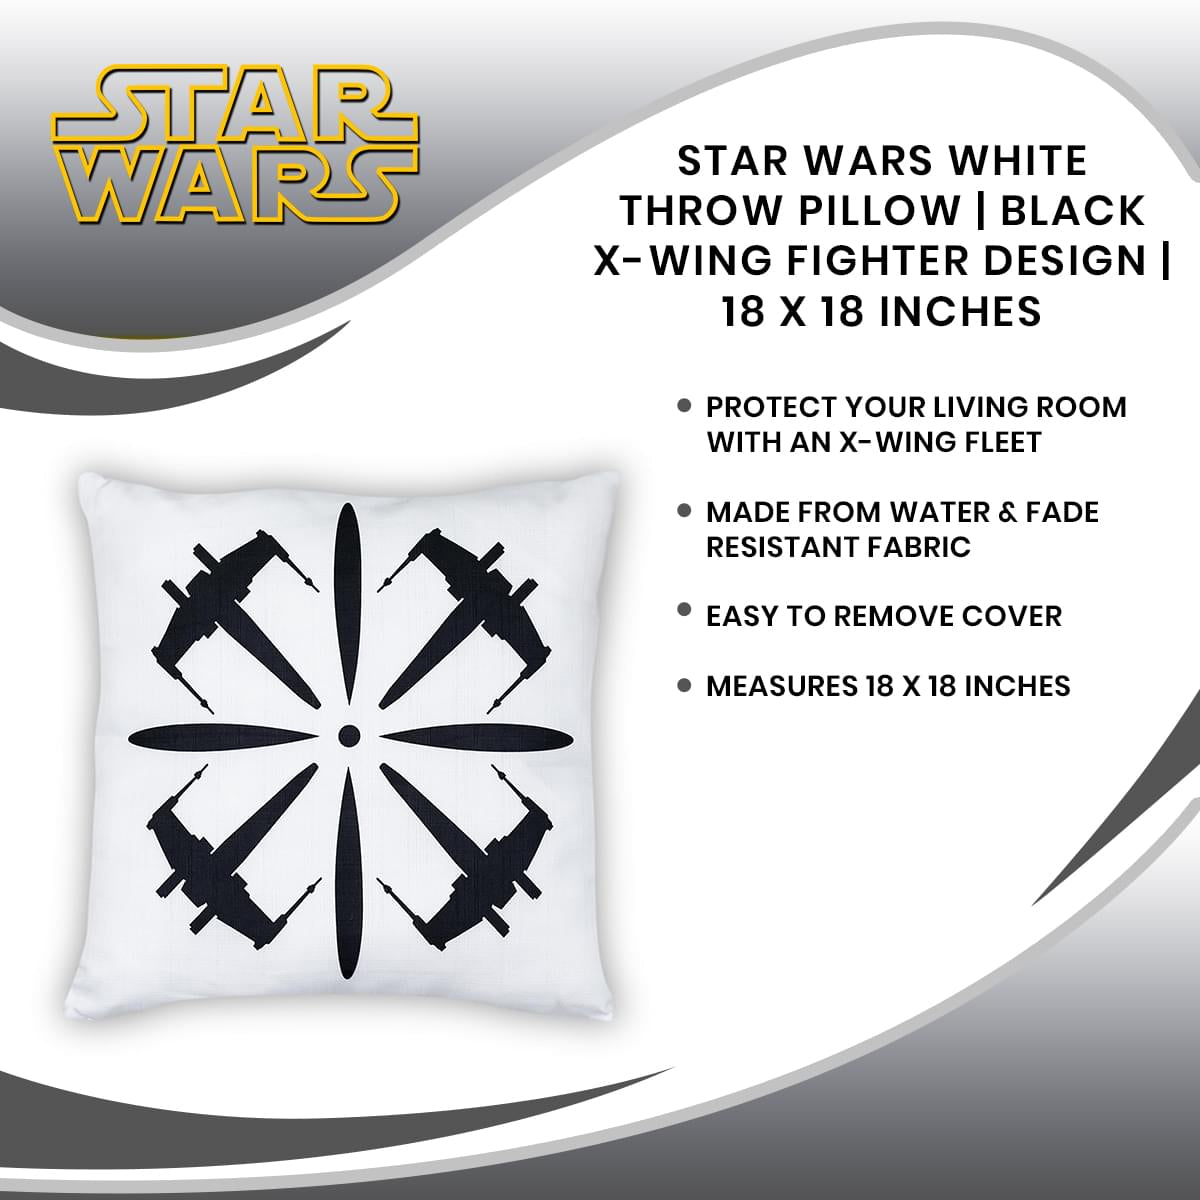 Star Wars White Throw Pillow | Black X-Wing Fighter Design | 18 x 18 Inches